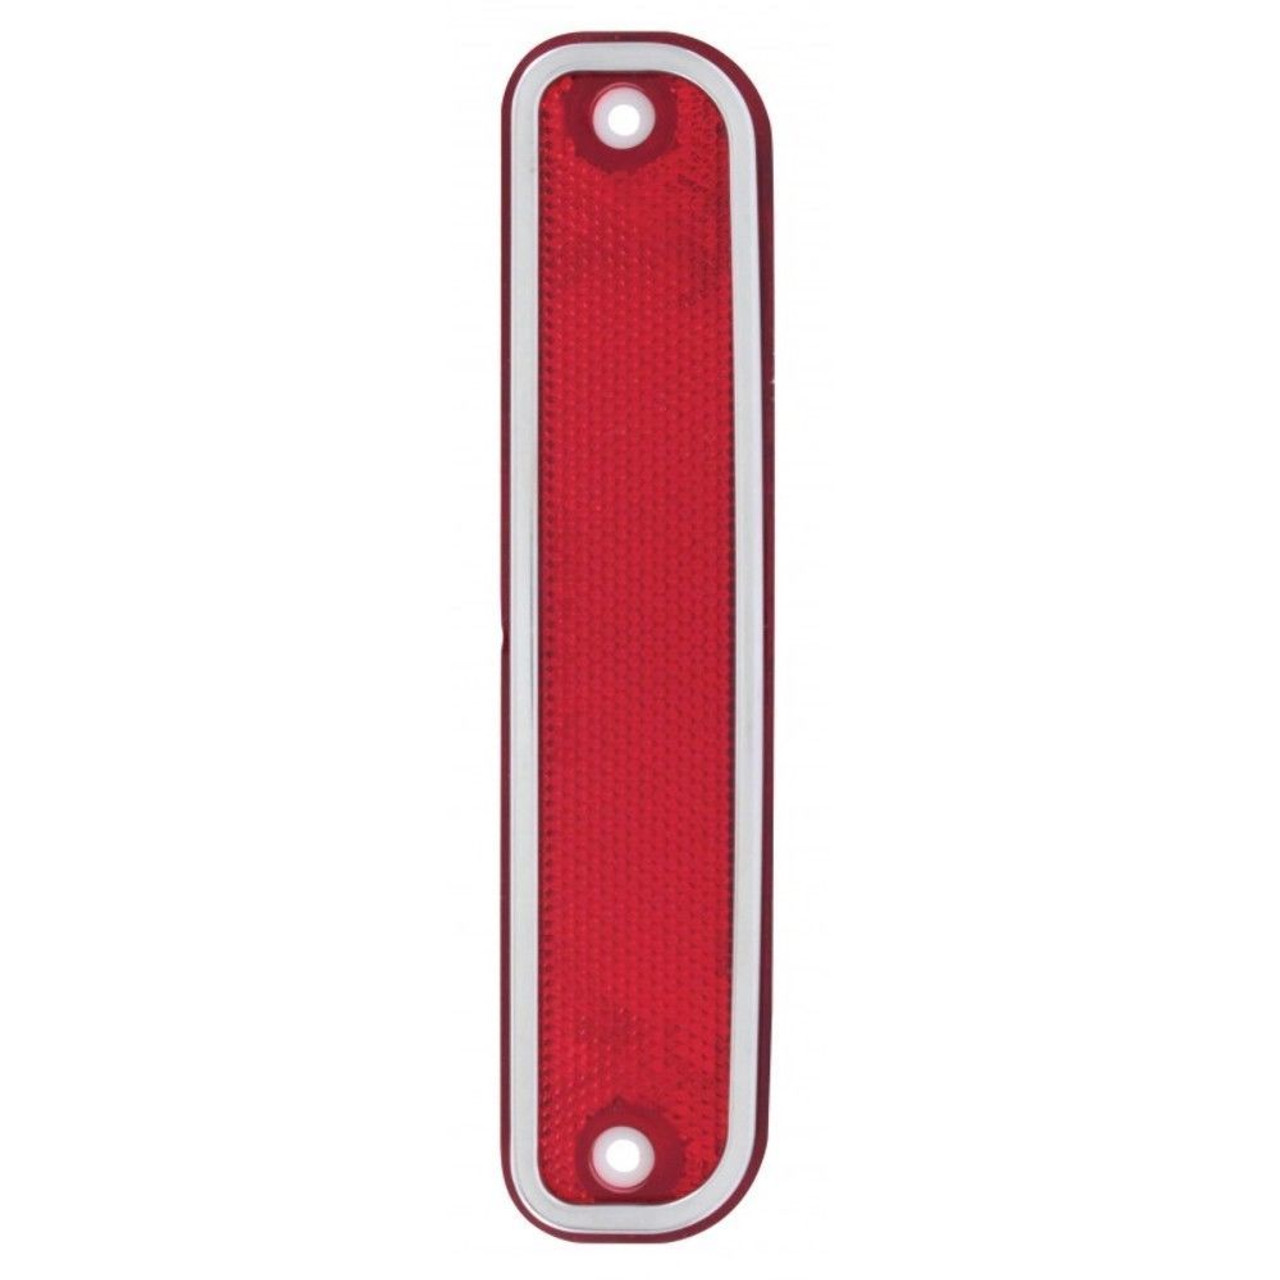 Side Marker Lights Lens W/ Stainless Steel Trim, Red, Fits Chevy Truck 1973-1980